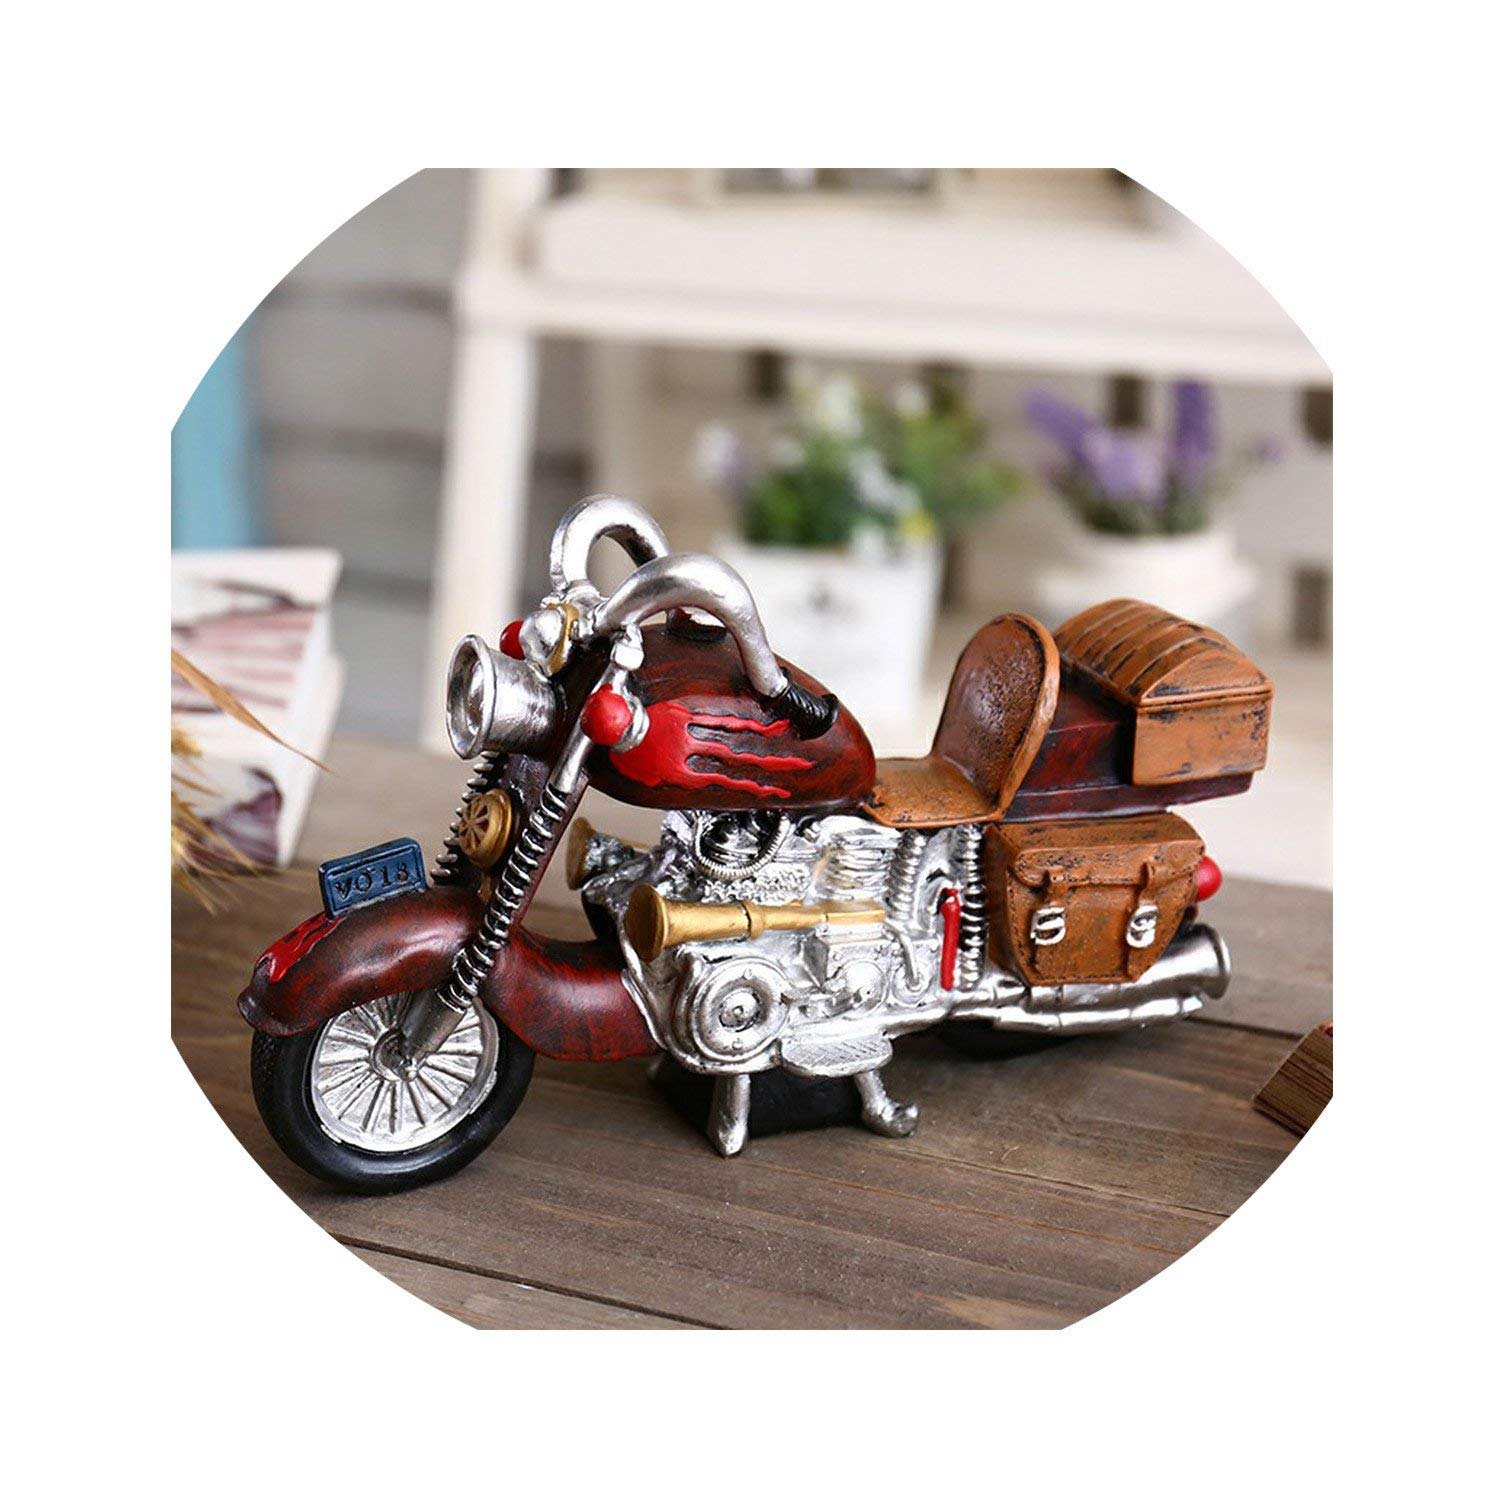 Fun Thing New Year Gift Motorcycle Figurine Piggy Bank Money Box Metal Coin Box Saving Box Home Decoration Crafts Gift for Kids,Motor Money Box Red by Goodbye-money bank